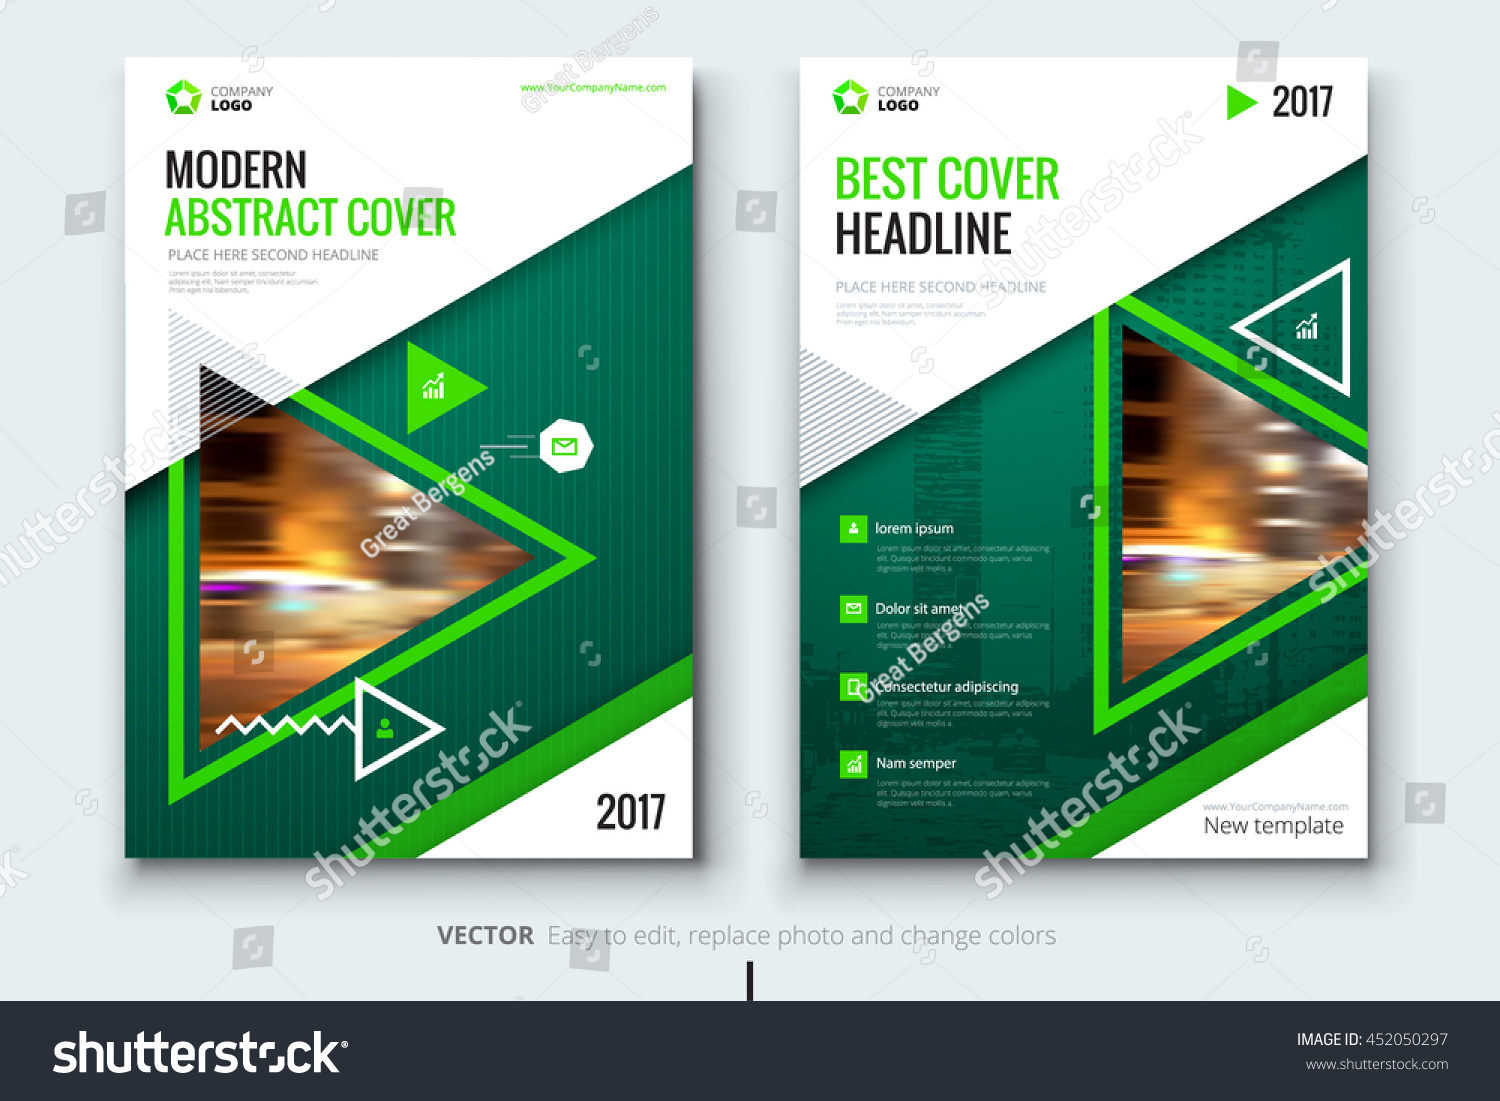 Green brochure template corporate business design stock for Managed services brochure template